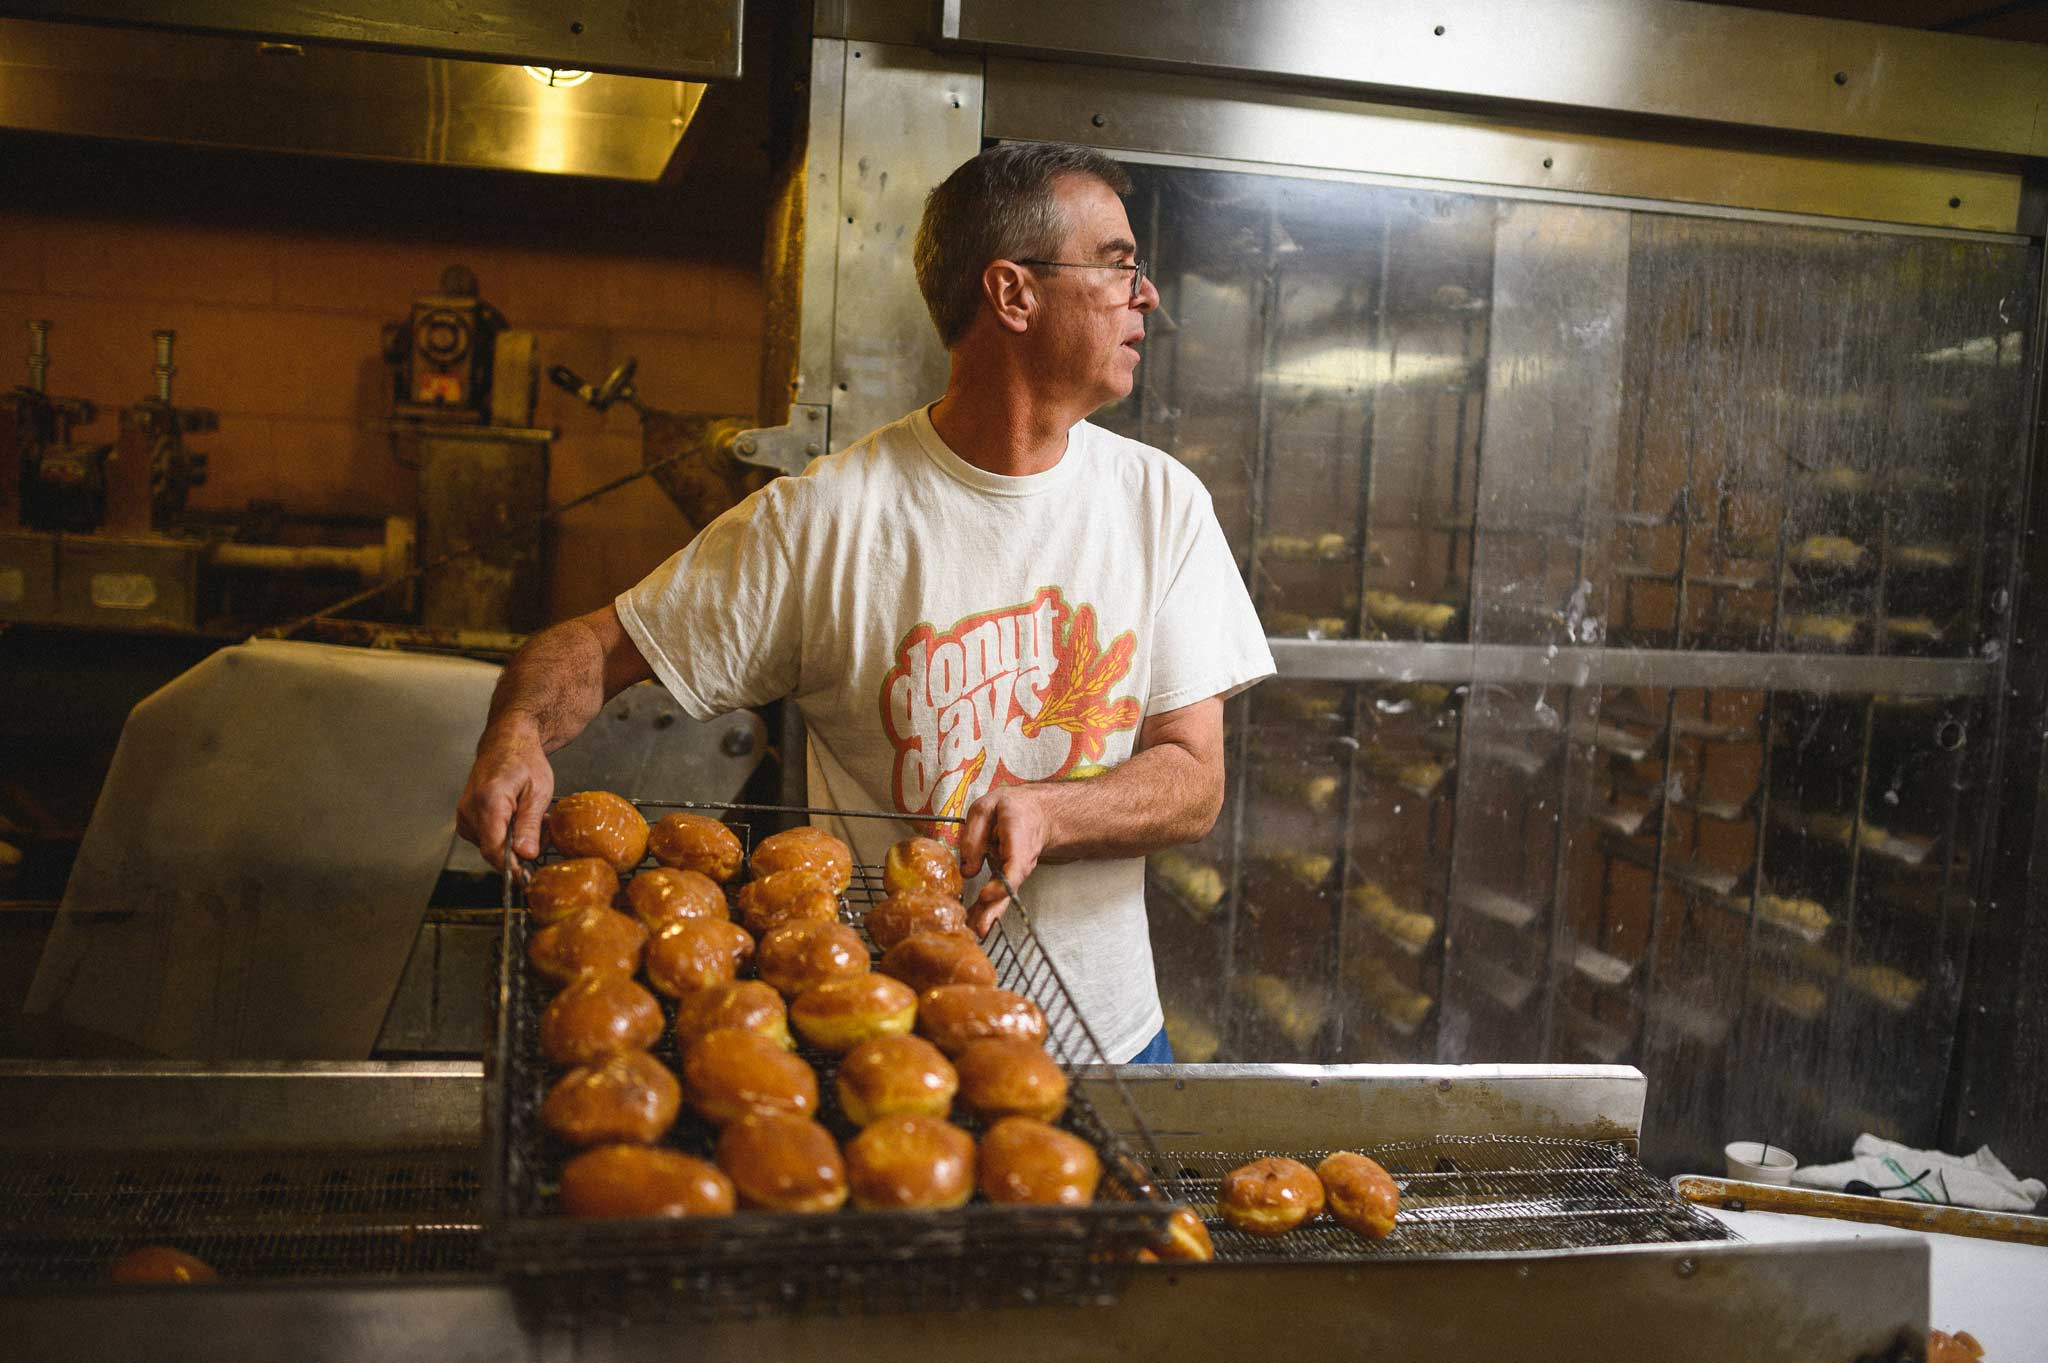 Fred takes a fresh batch of donuts off the glazing machine.